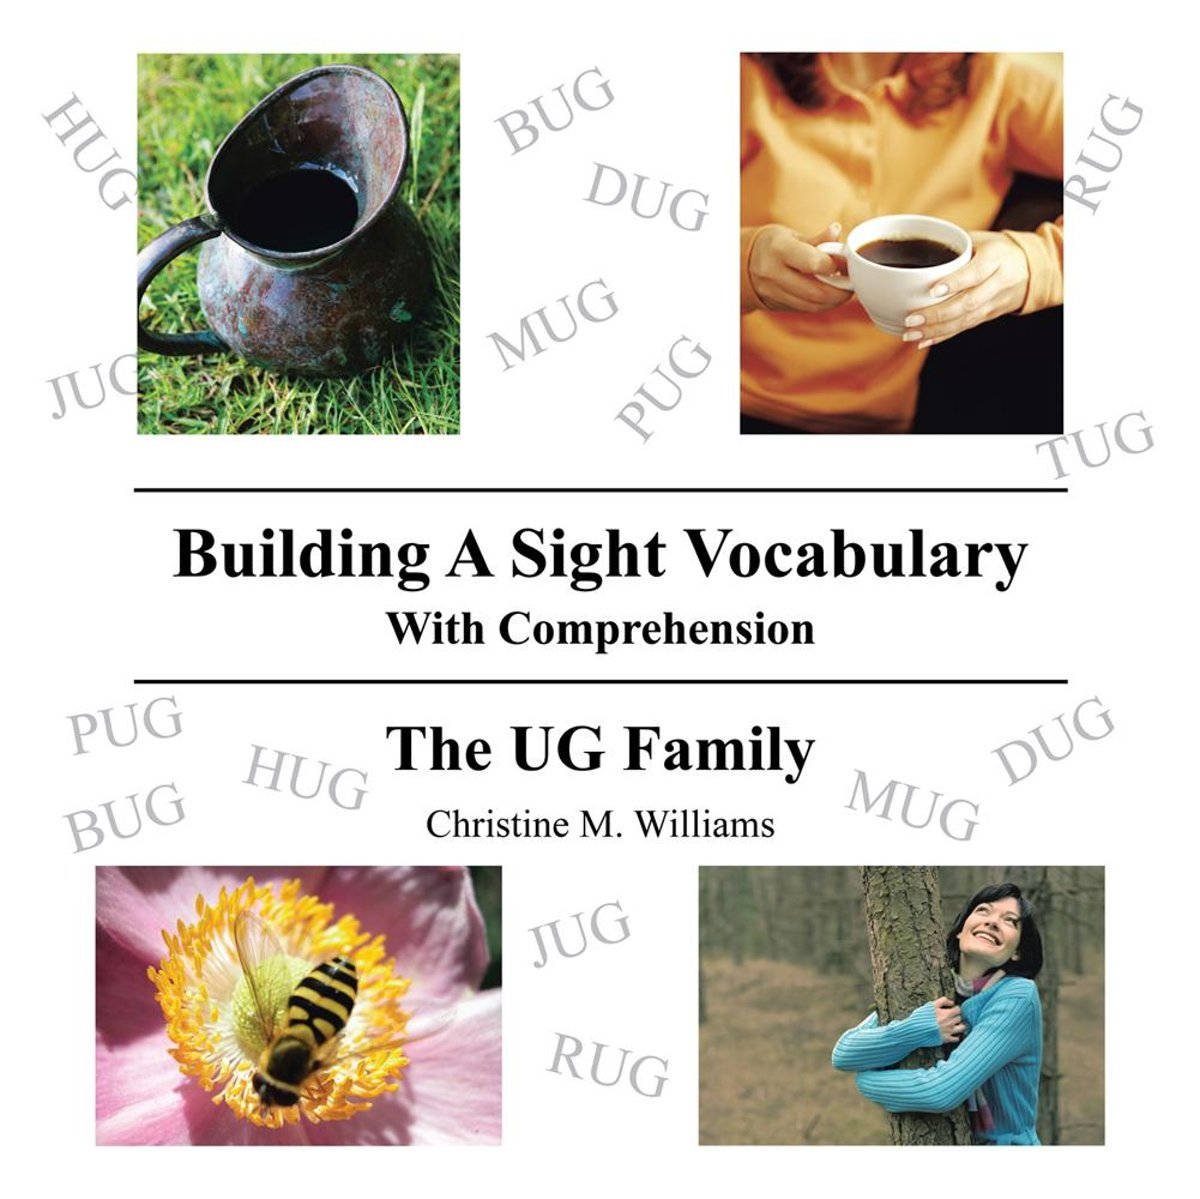 Building a Sight Vocabulary with Comprehension